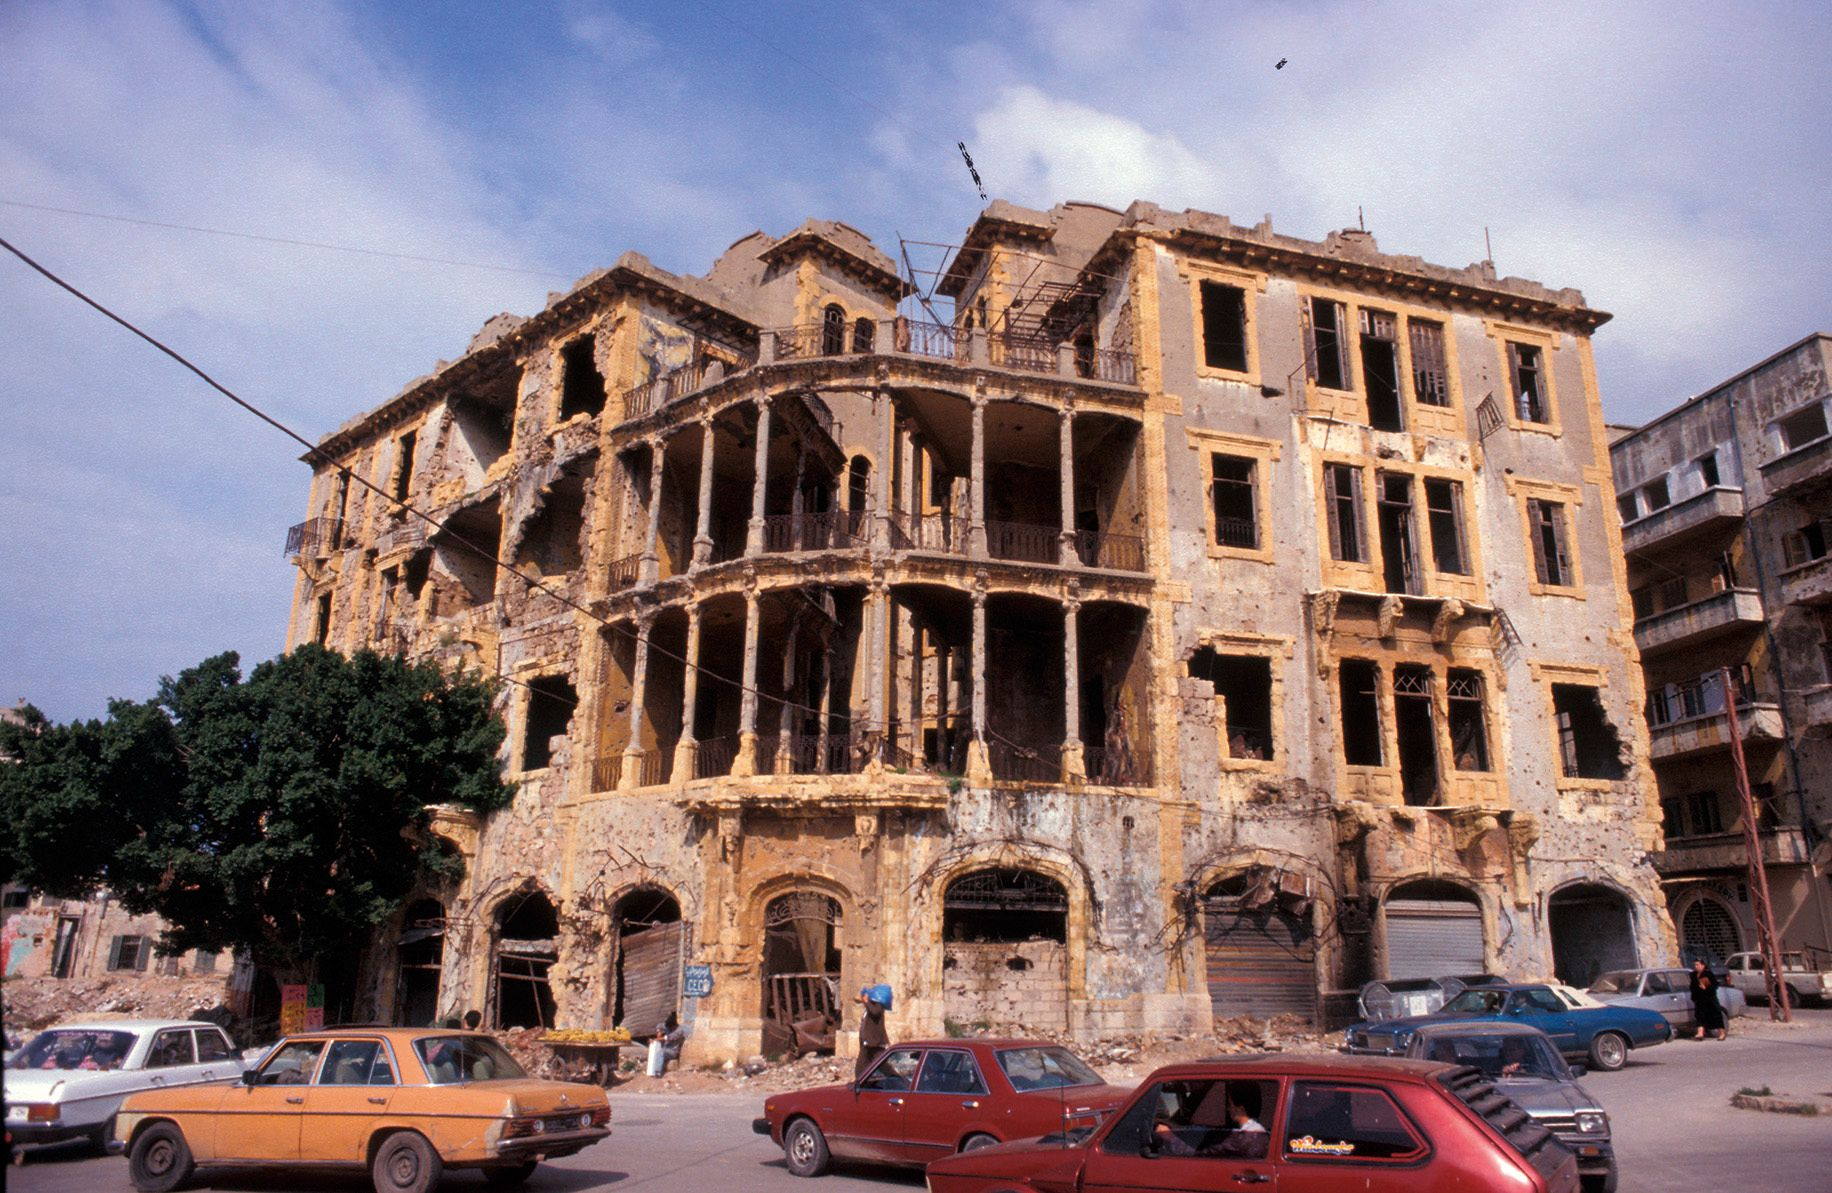 Beit Beirut, 1995. Ruined building left unrestored, houses a cultural foundation. Photo: OM.